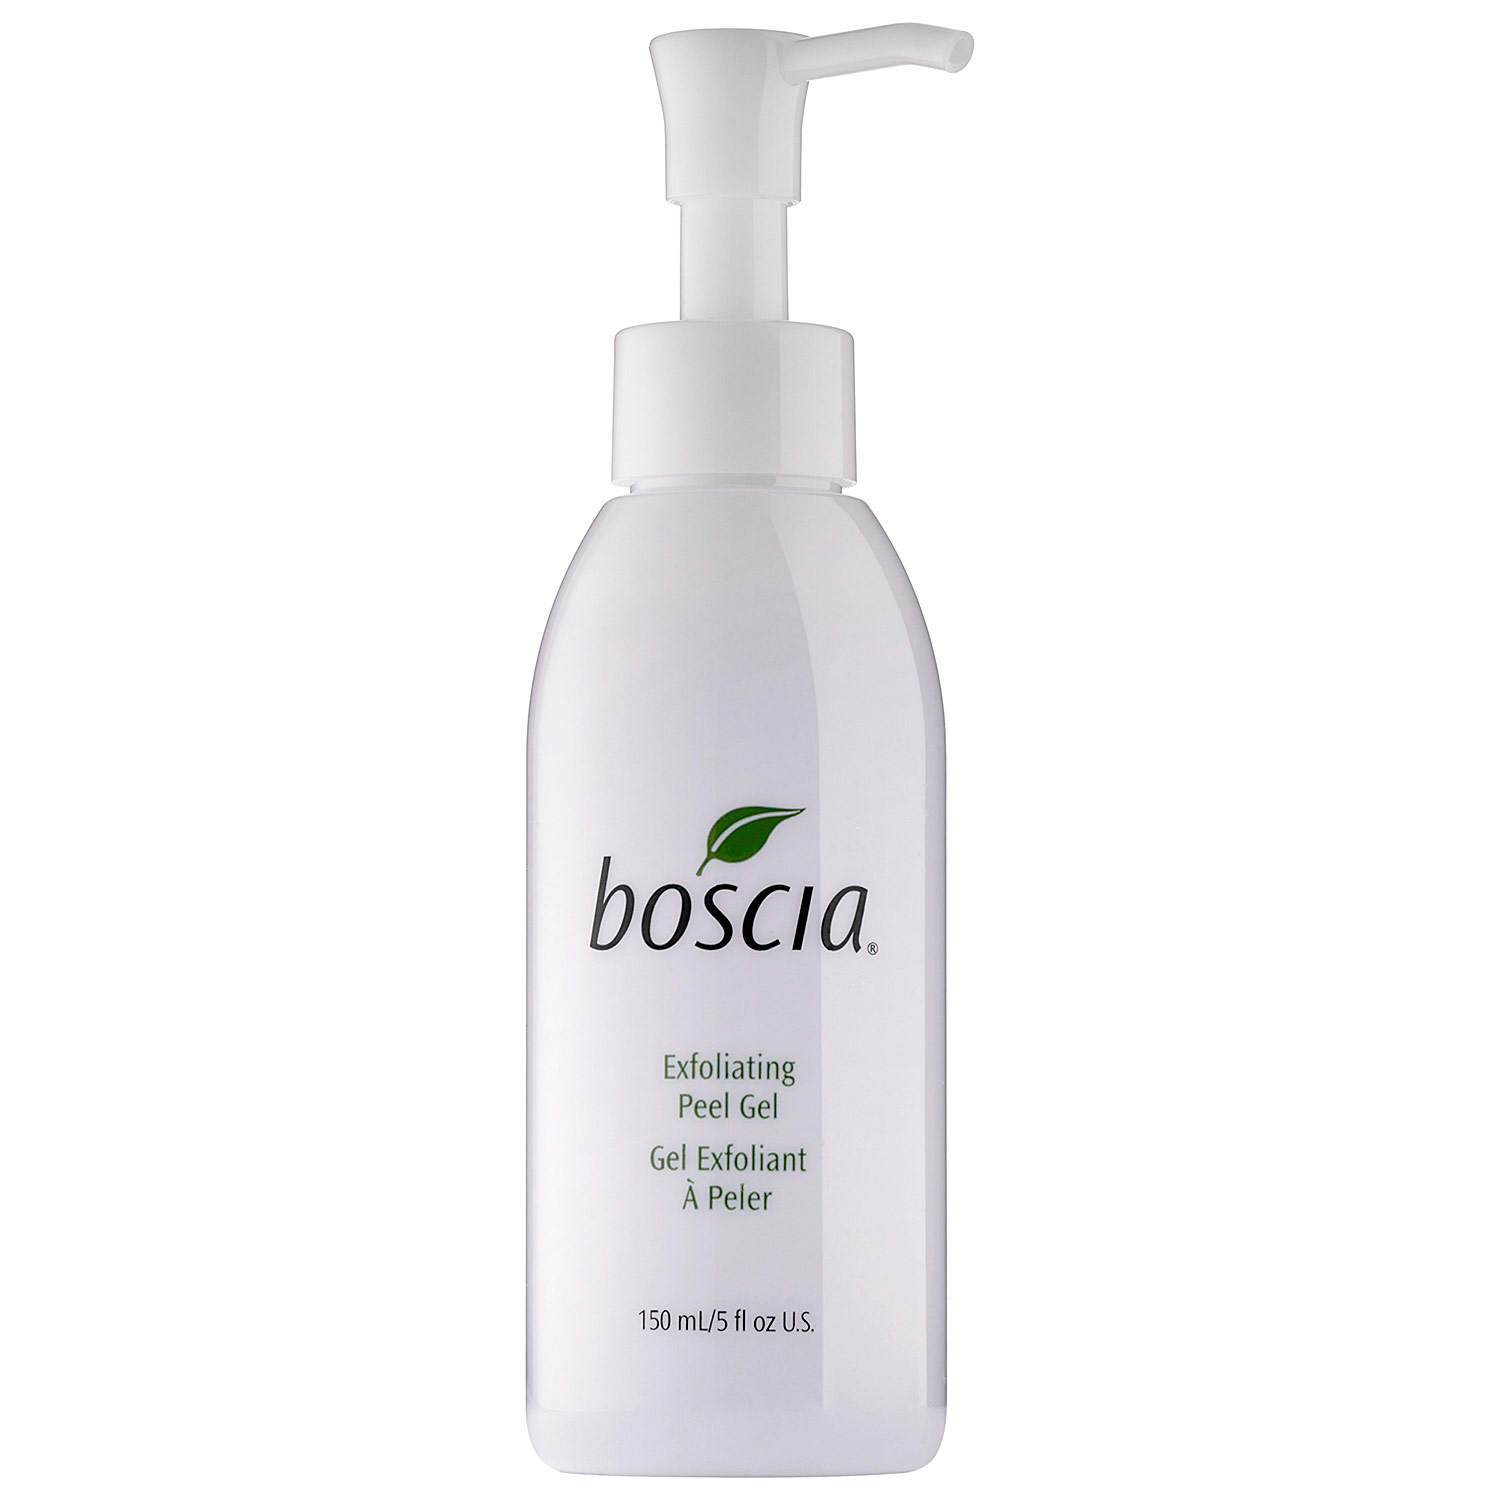 Best Gel Exfoliator: BOSCIA Exfoliating Peel Gel